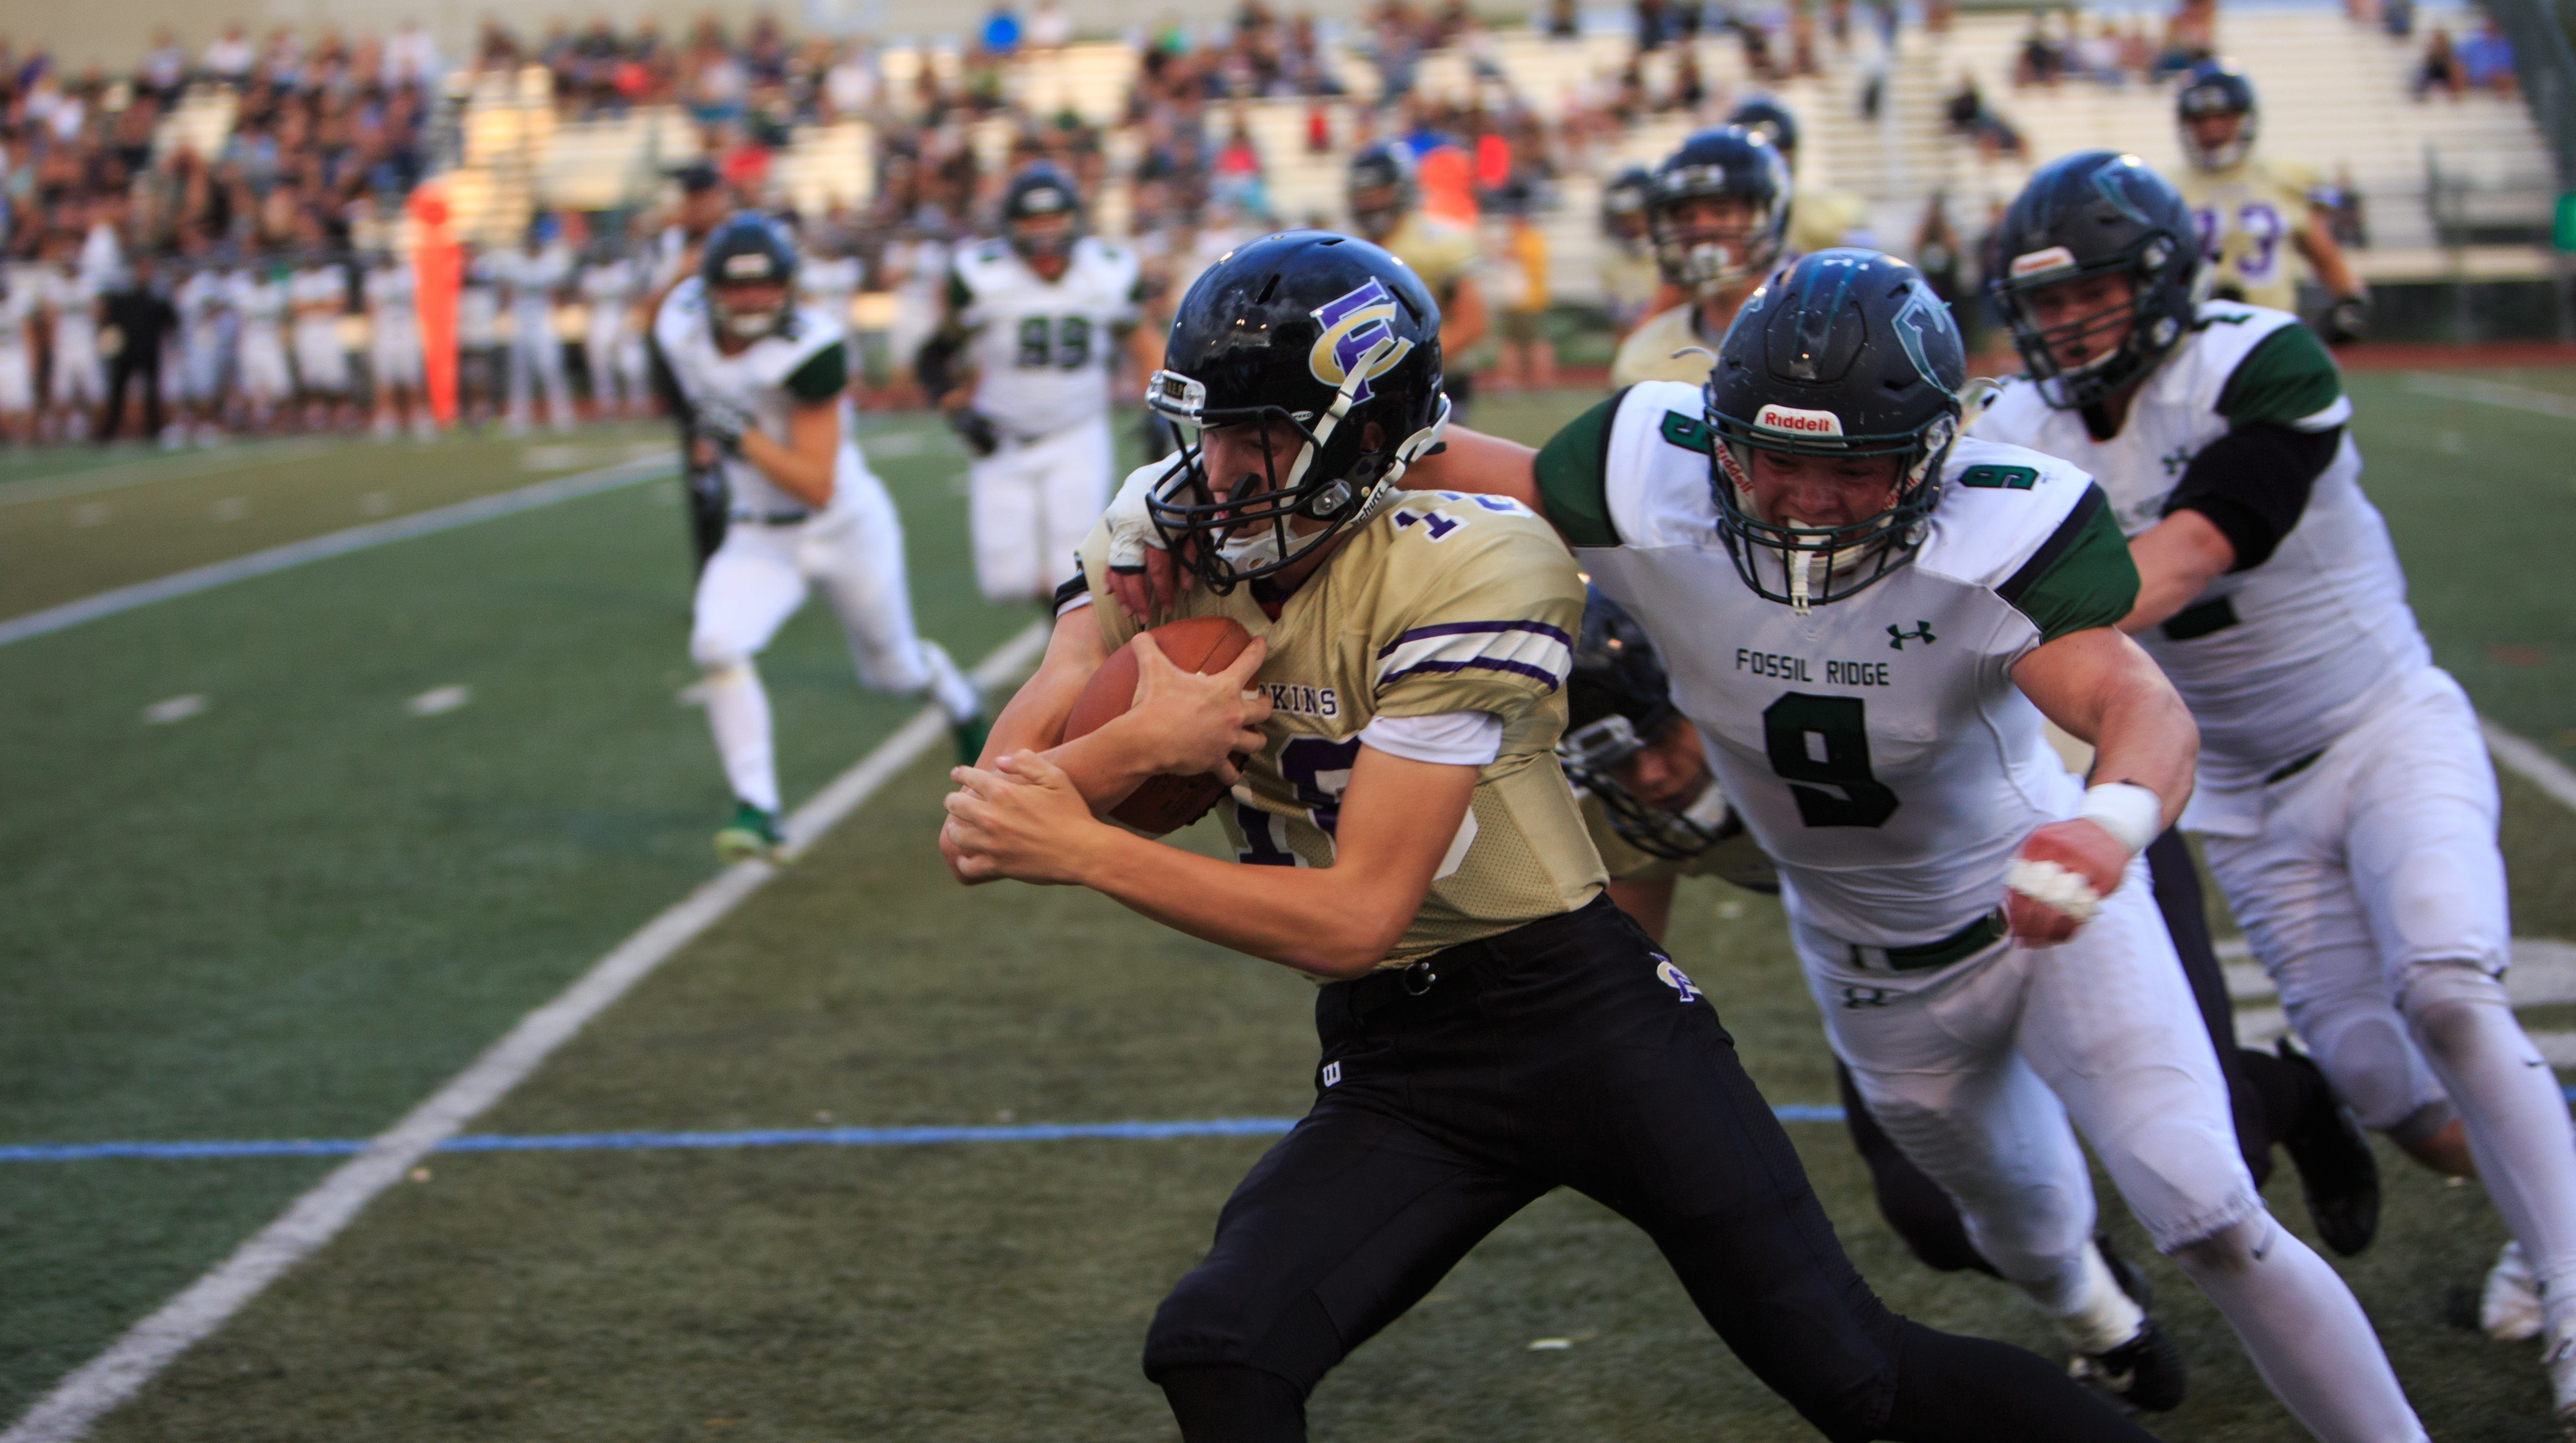 Fort Collins Nipped Windsor Upset Rocky Mountain Routed In Friday